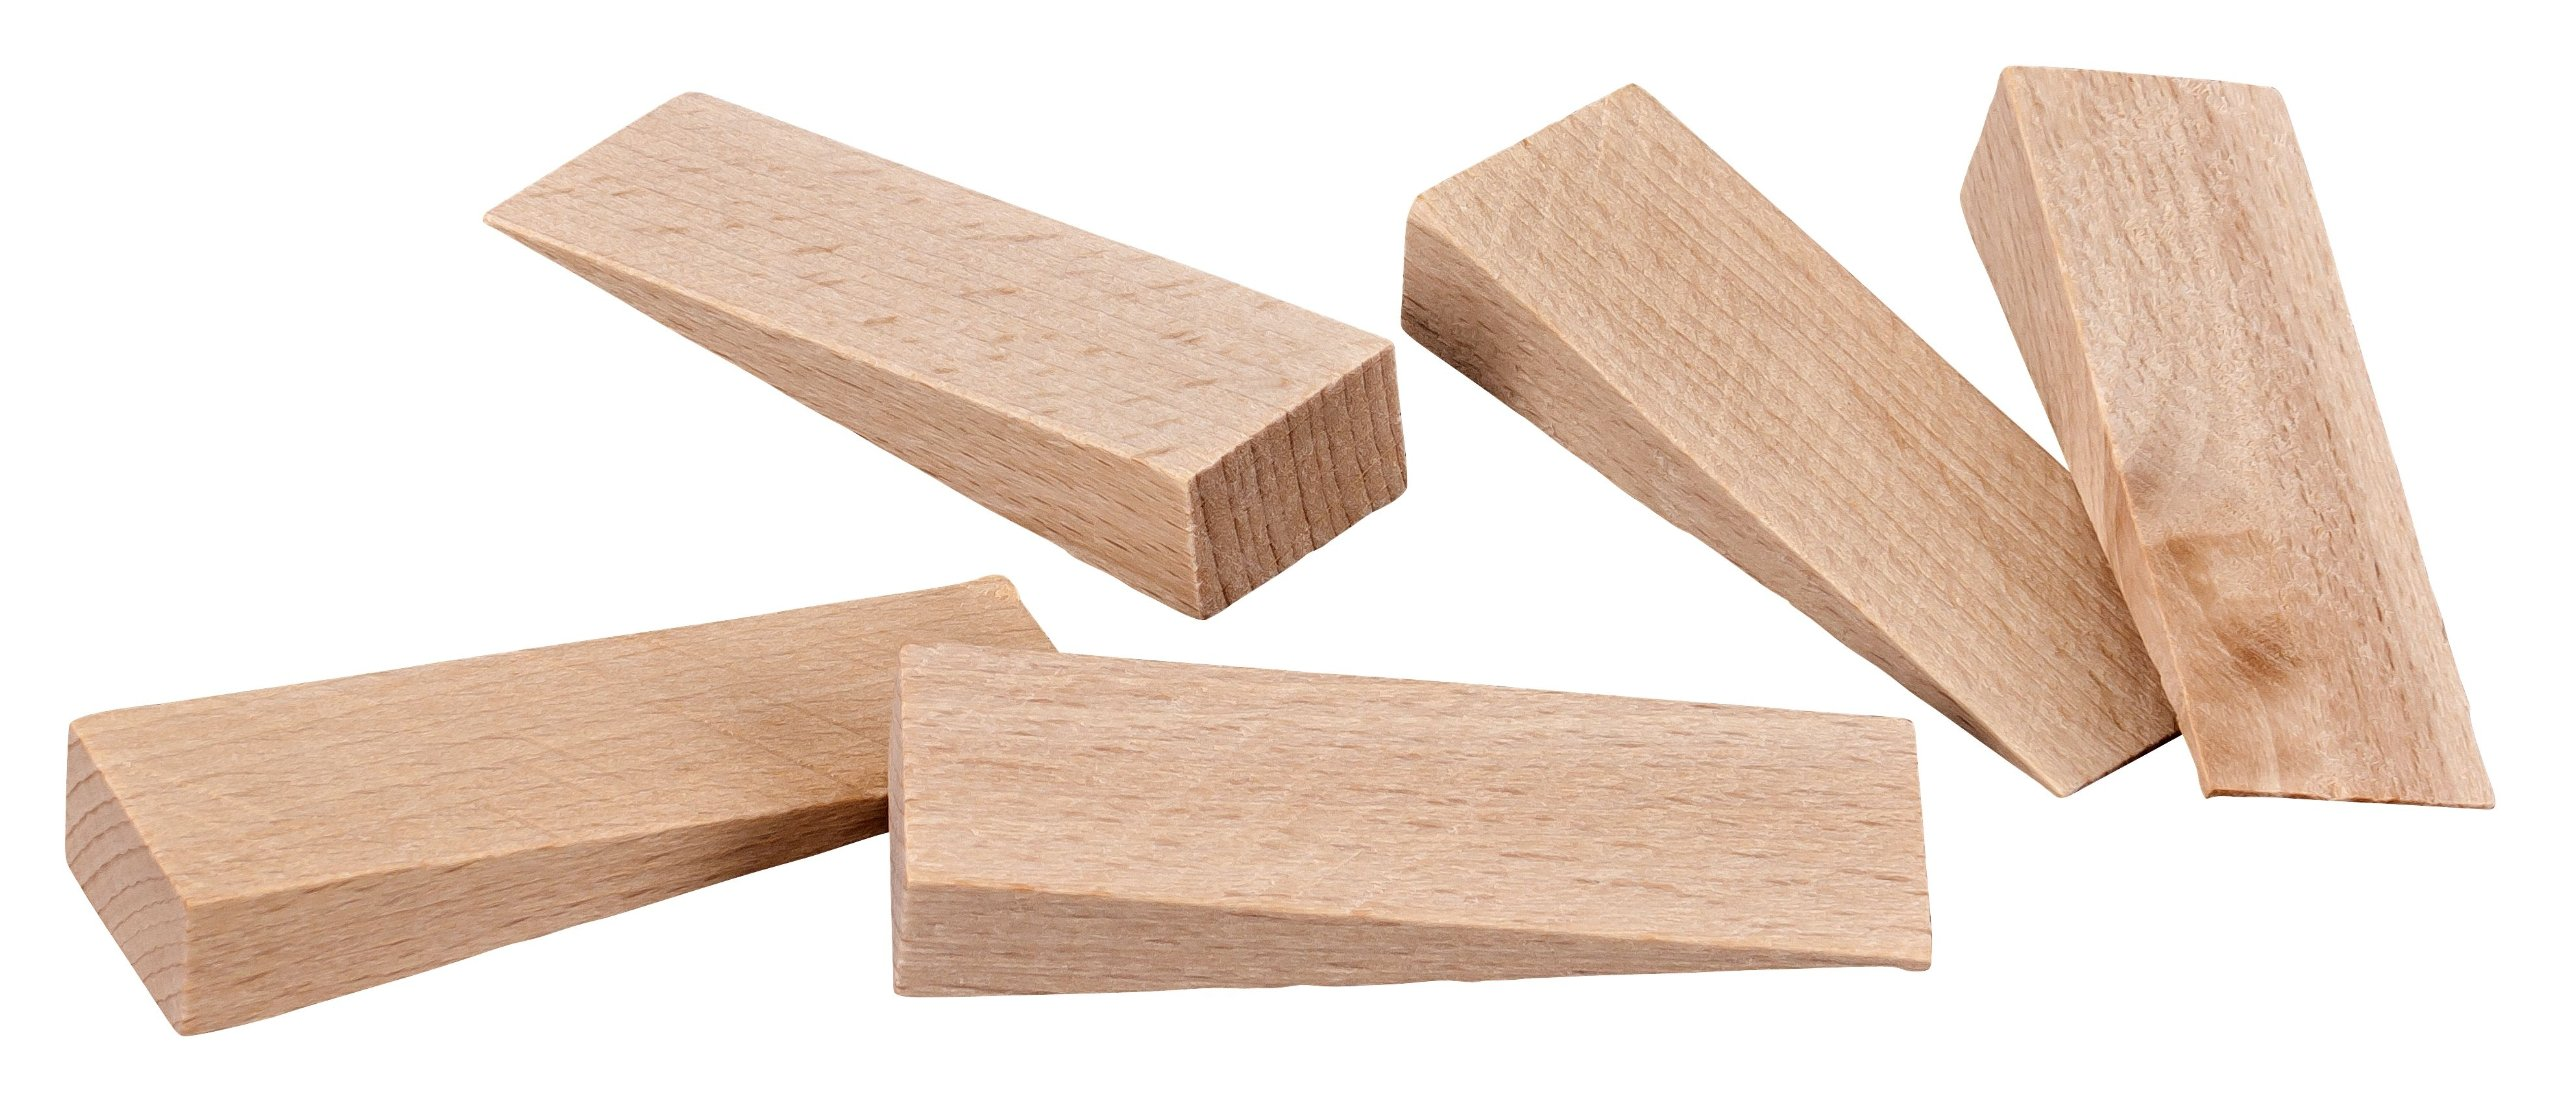 haggiy Wood Wedges, Furniture Stabilizer, Door Stopper made of Natural Beech 3.94'' x 1.57'' x 0.98'' (10 Pcs.)